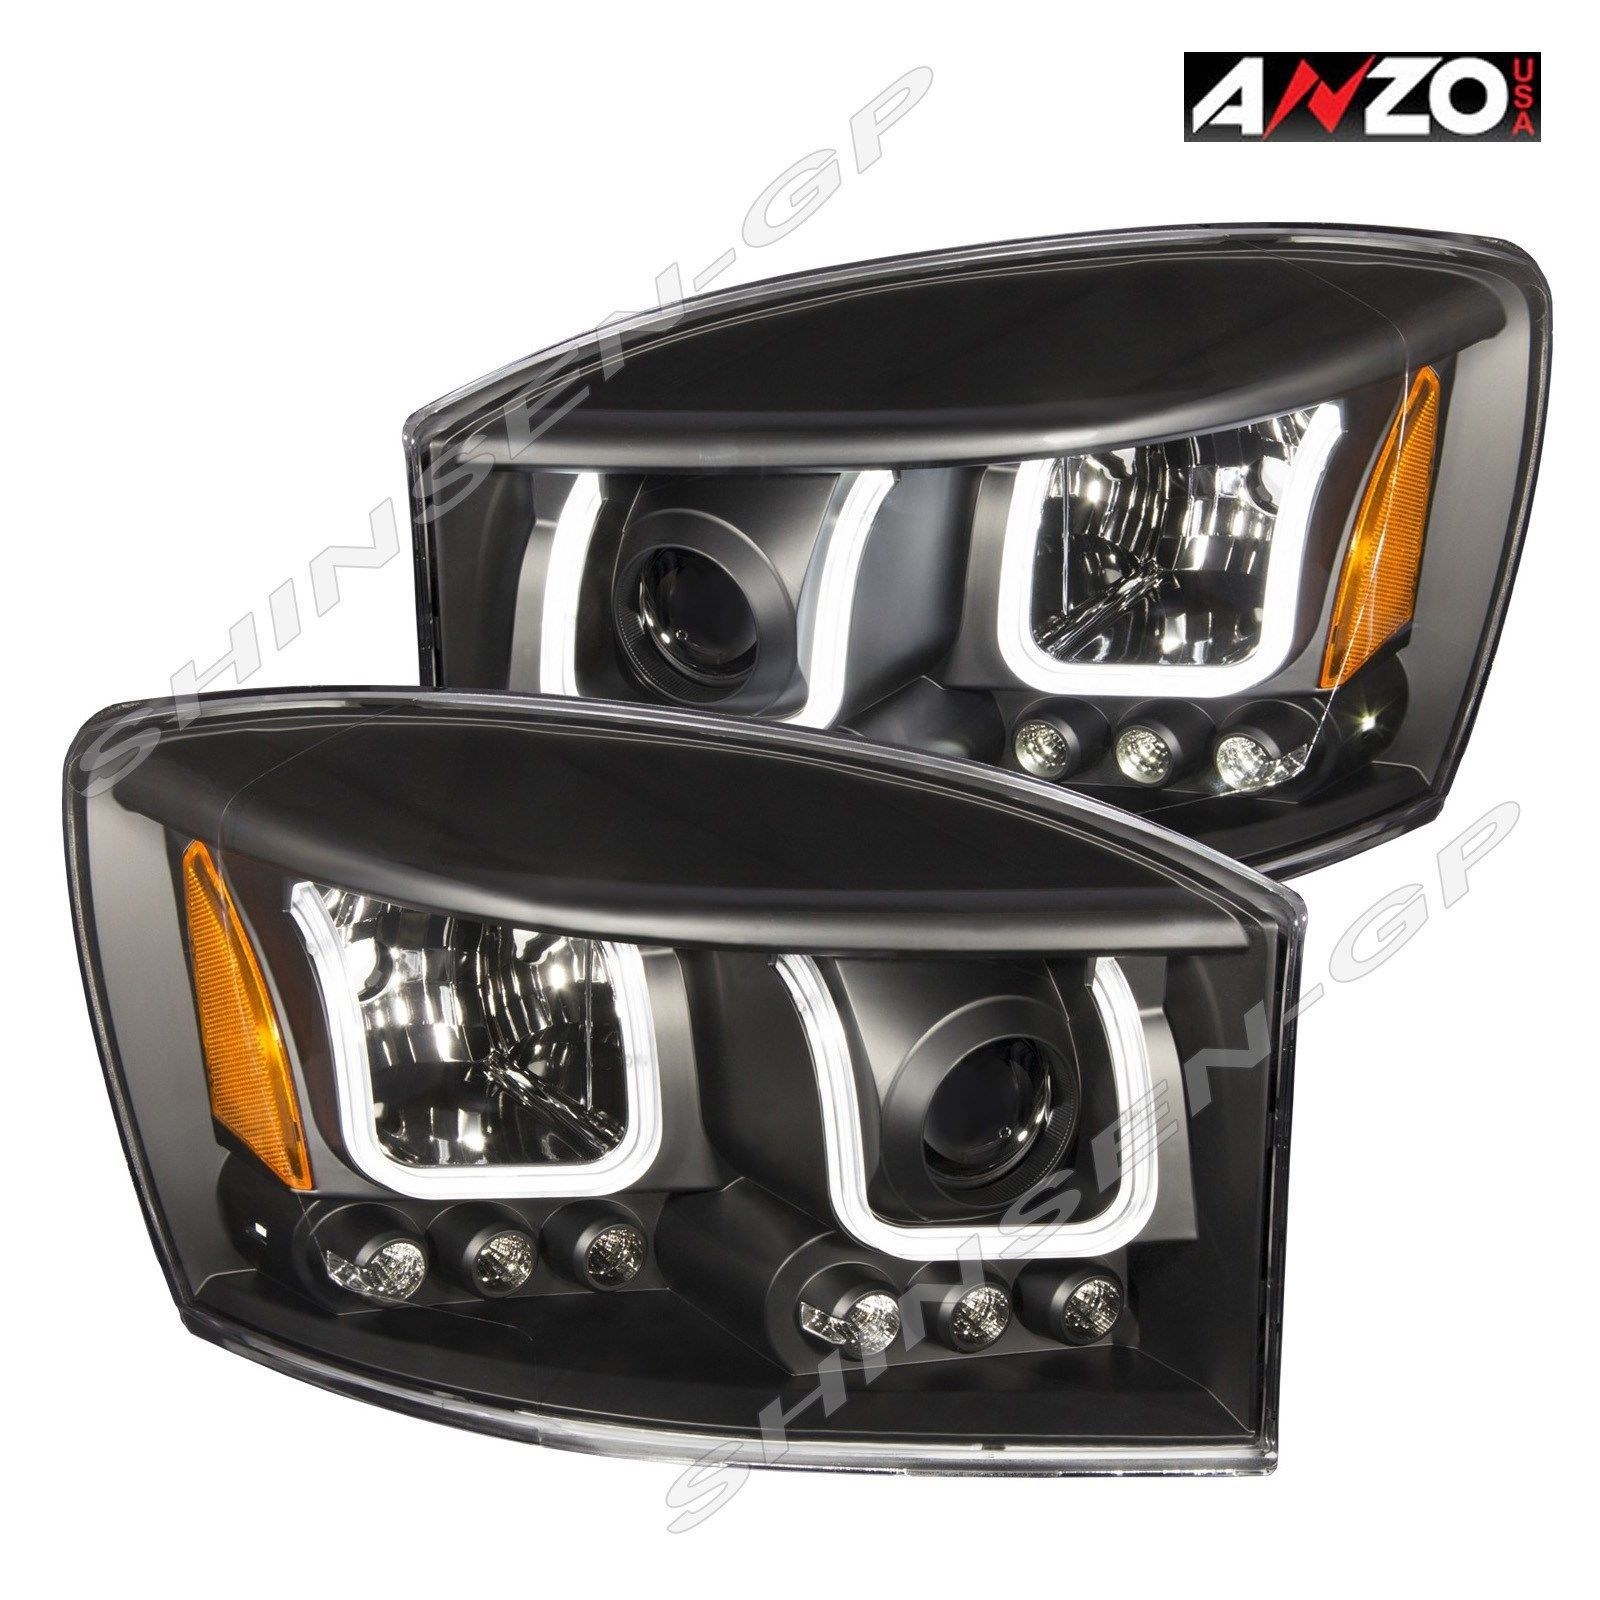 Anzo U Bar Projector Headlights Black 2006 2008 Dodge Ram 1500 06 09 2500 3500 Ebay